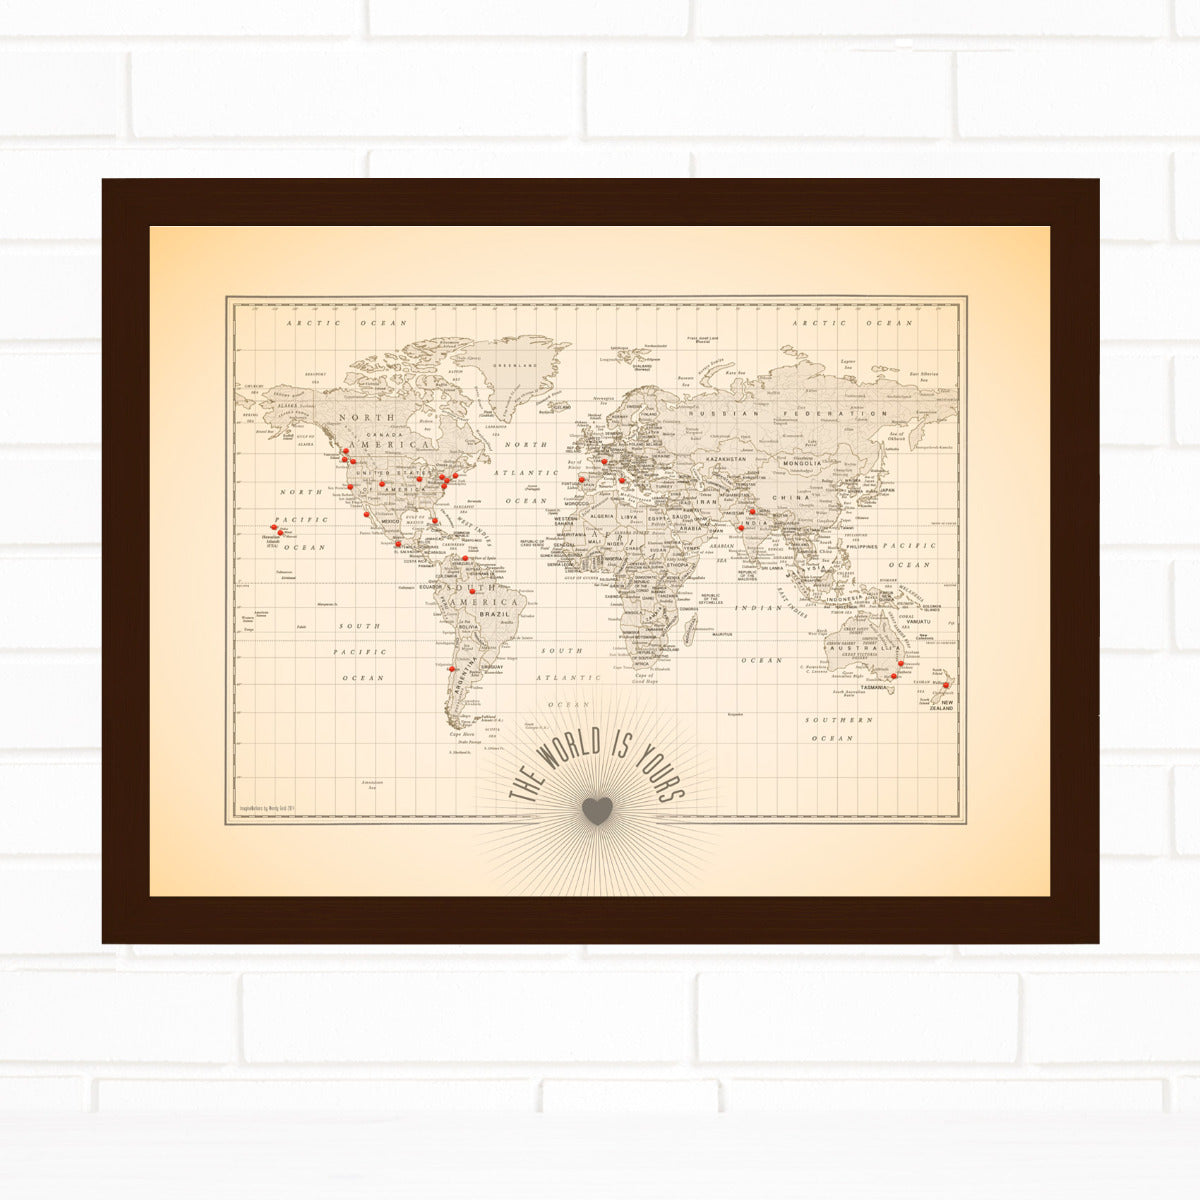 Push Pin Map The World is Yours Quickship by Wendy Gold